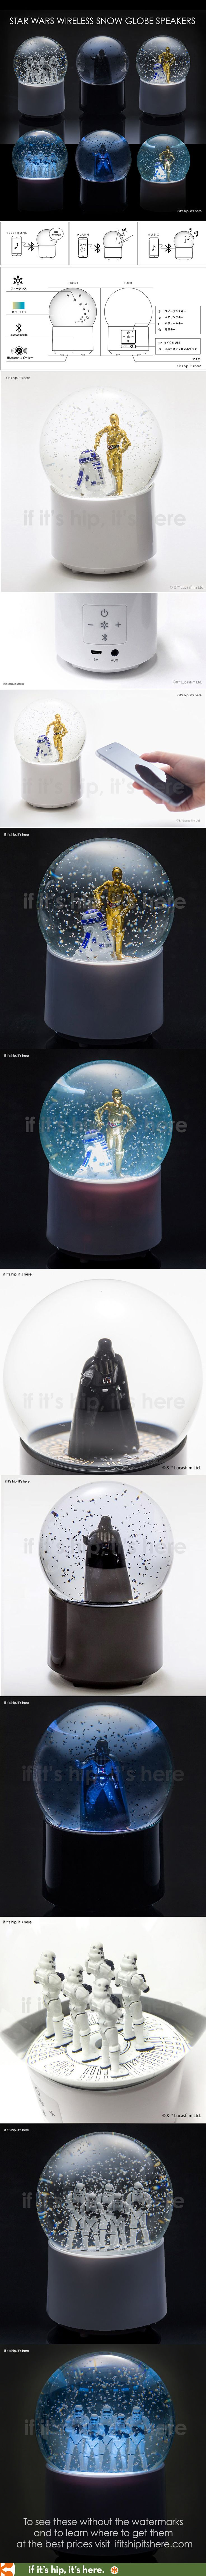 Beautifully made, official Lucasfilm Star Wars Snow Globes that are Bluetooth-enabled wireless speakers with LED lighting and voice control. Details and prices at http://www.ifitshipitshere.com/star-wars-wireless-snow-globe-speakers/